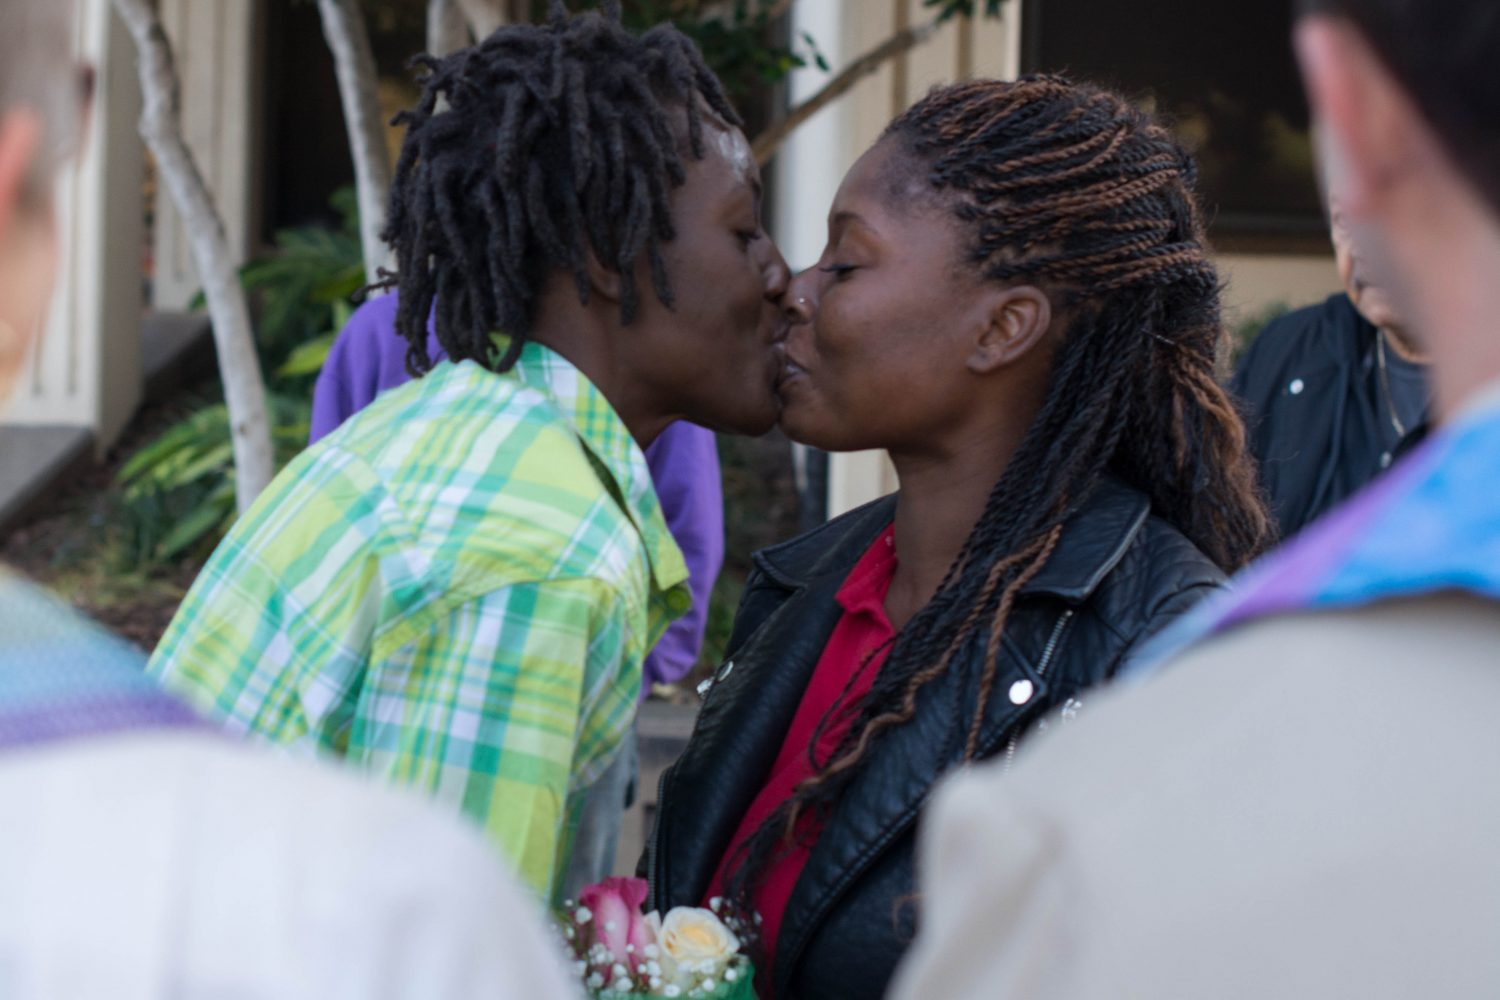 Gainesville residents Quintyra White (left) shares her first kiss with wife LaKindra Ellis-White on Tuesday, Jan. 6 outside the Alachua County Courthouse.